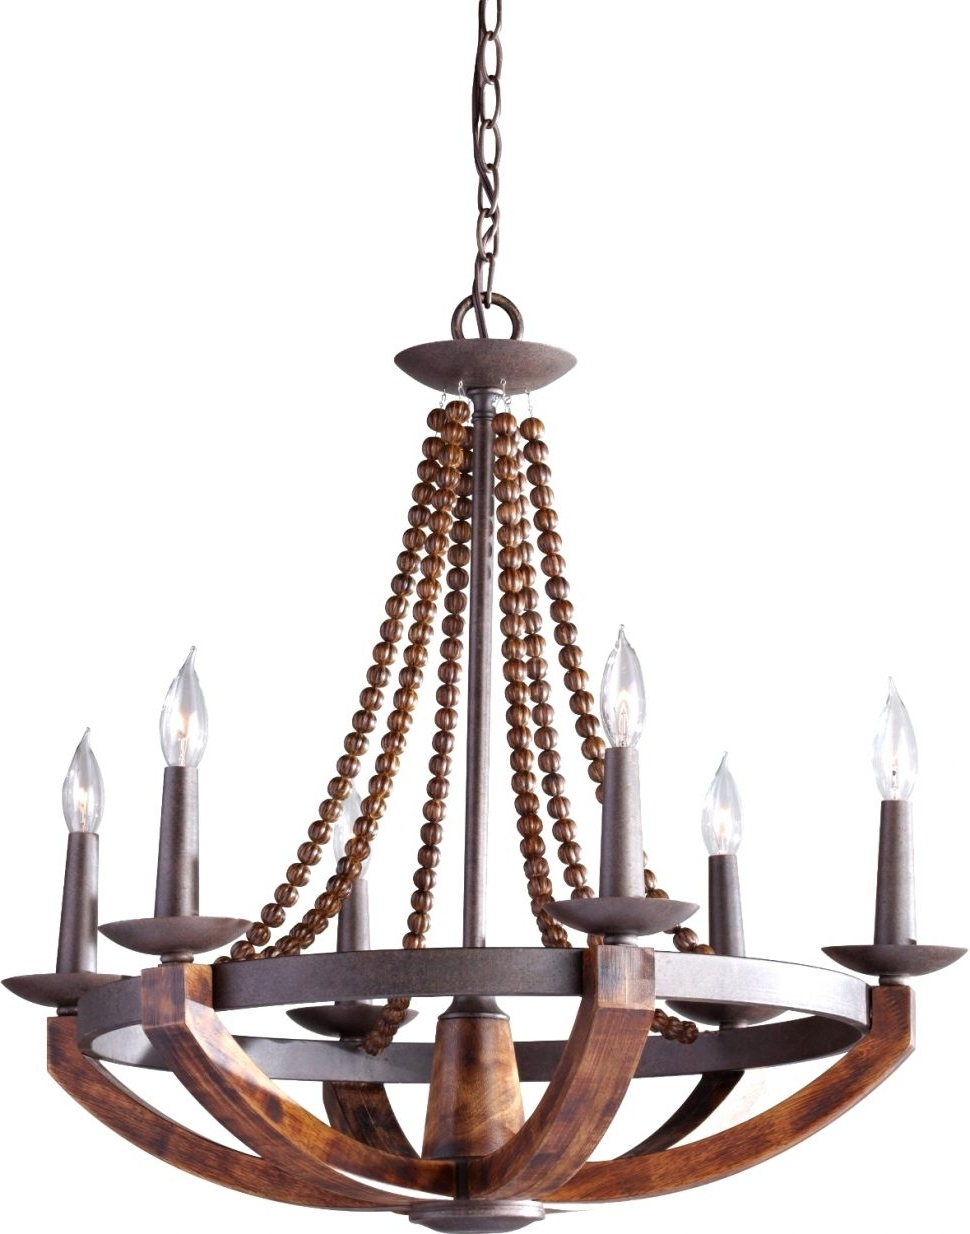 Widely Used Metal Chandeliers Throughout Light : Large Rustic Chandelier Lighting With Best Wood And Metal (View 14 of 15)